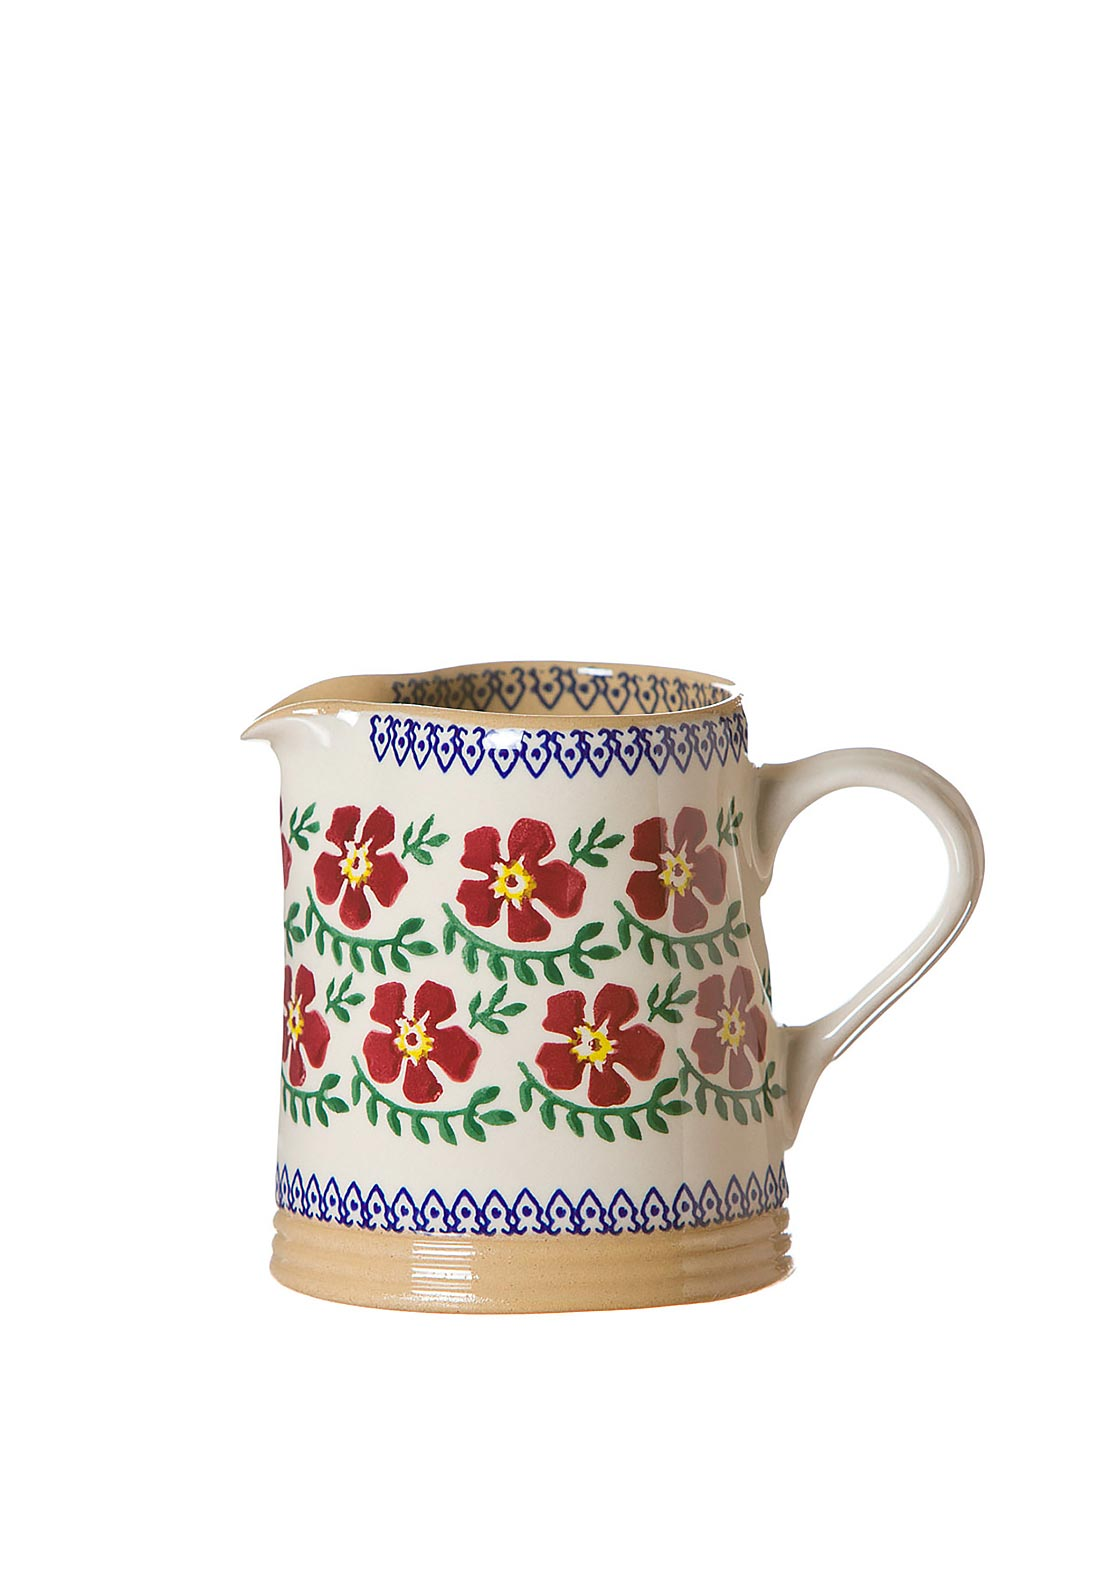 Nicholas Mosse Pottery Old Rose Cylinder Jug, Small